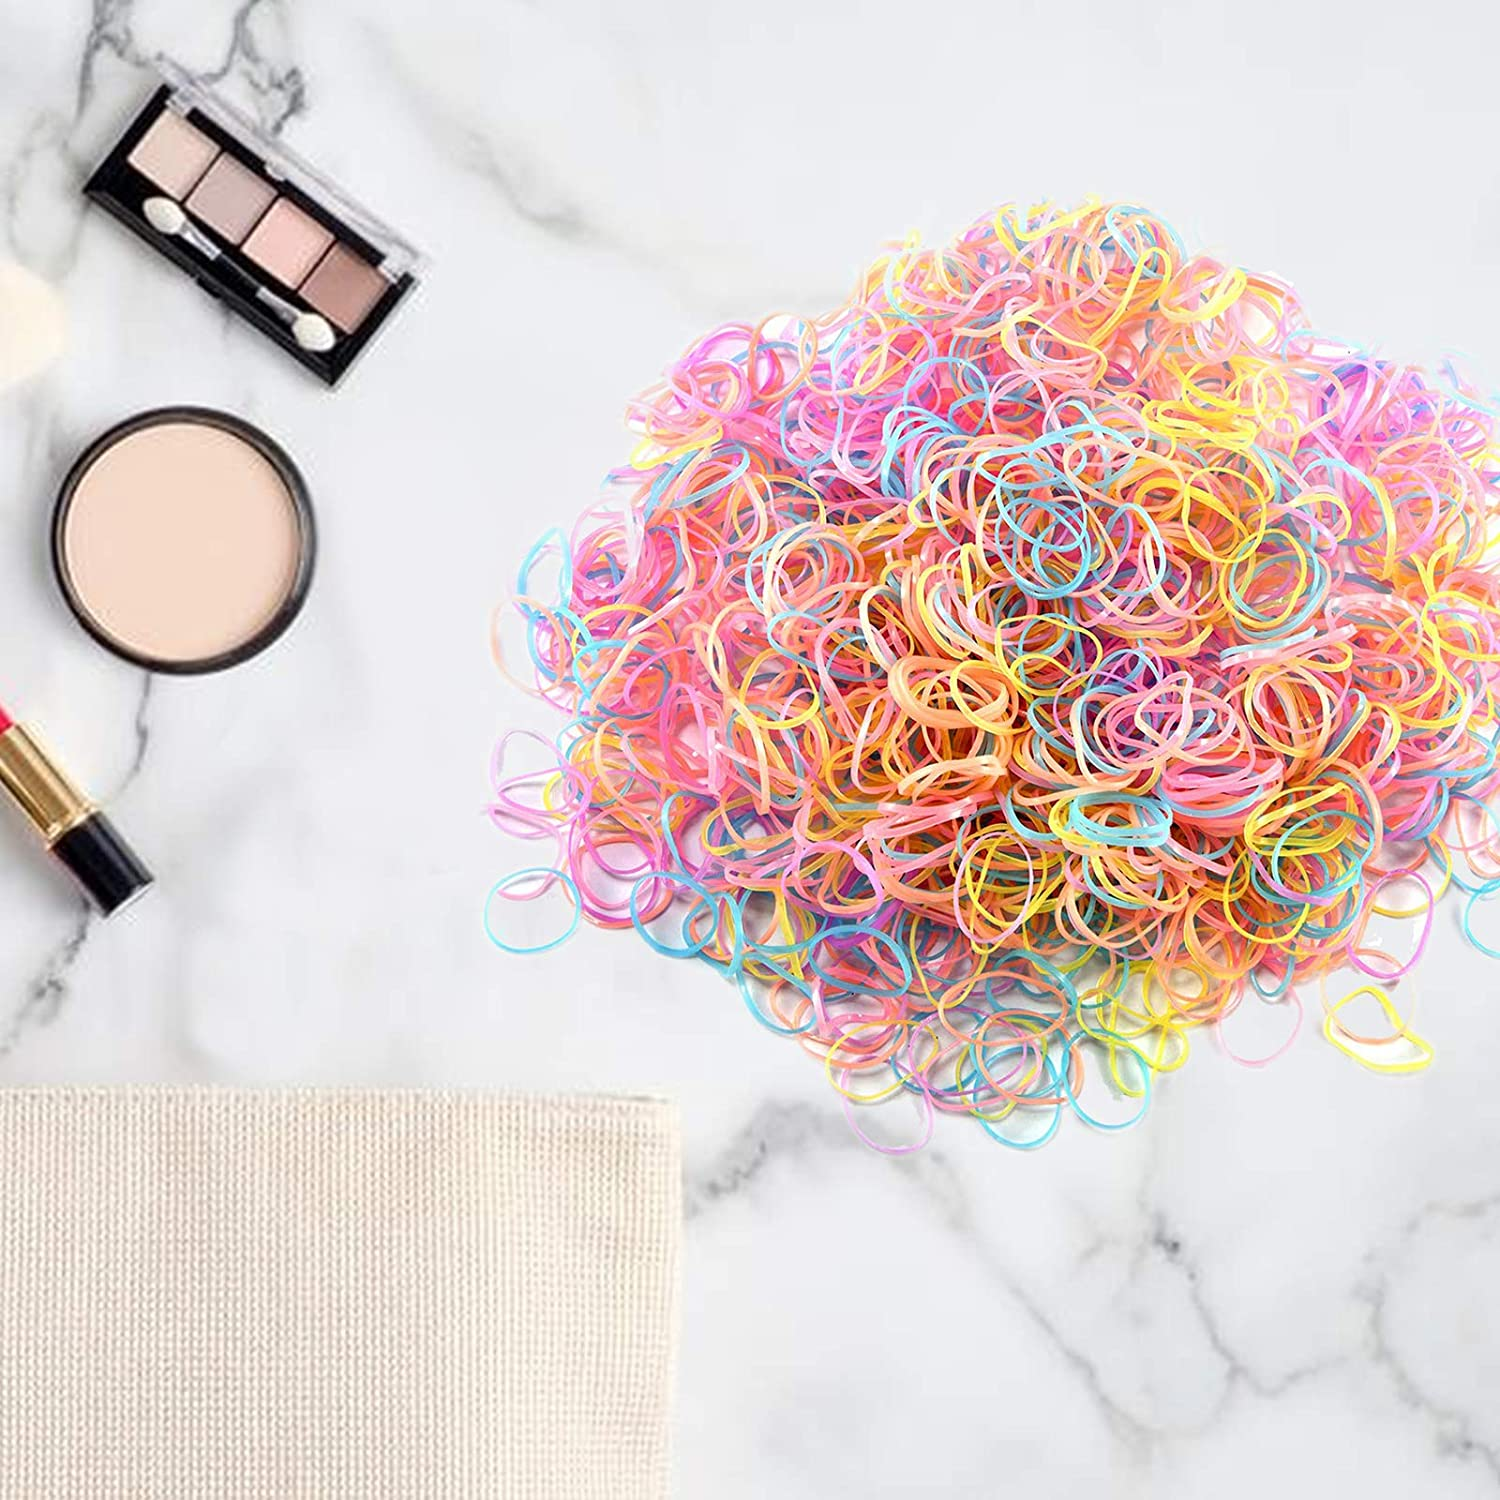 Molizummy 1500PCS Hair Ties, Color Elastic Rubber Hair Bands for Women Baby Girls Toddlers, Soft Fashion Hair Styling Accessories Ponytail Holders : Beauty